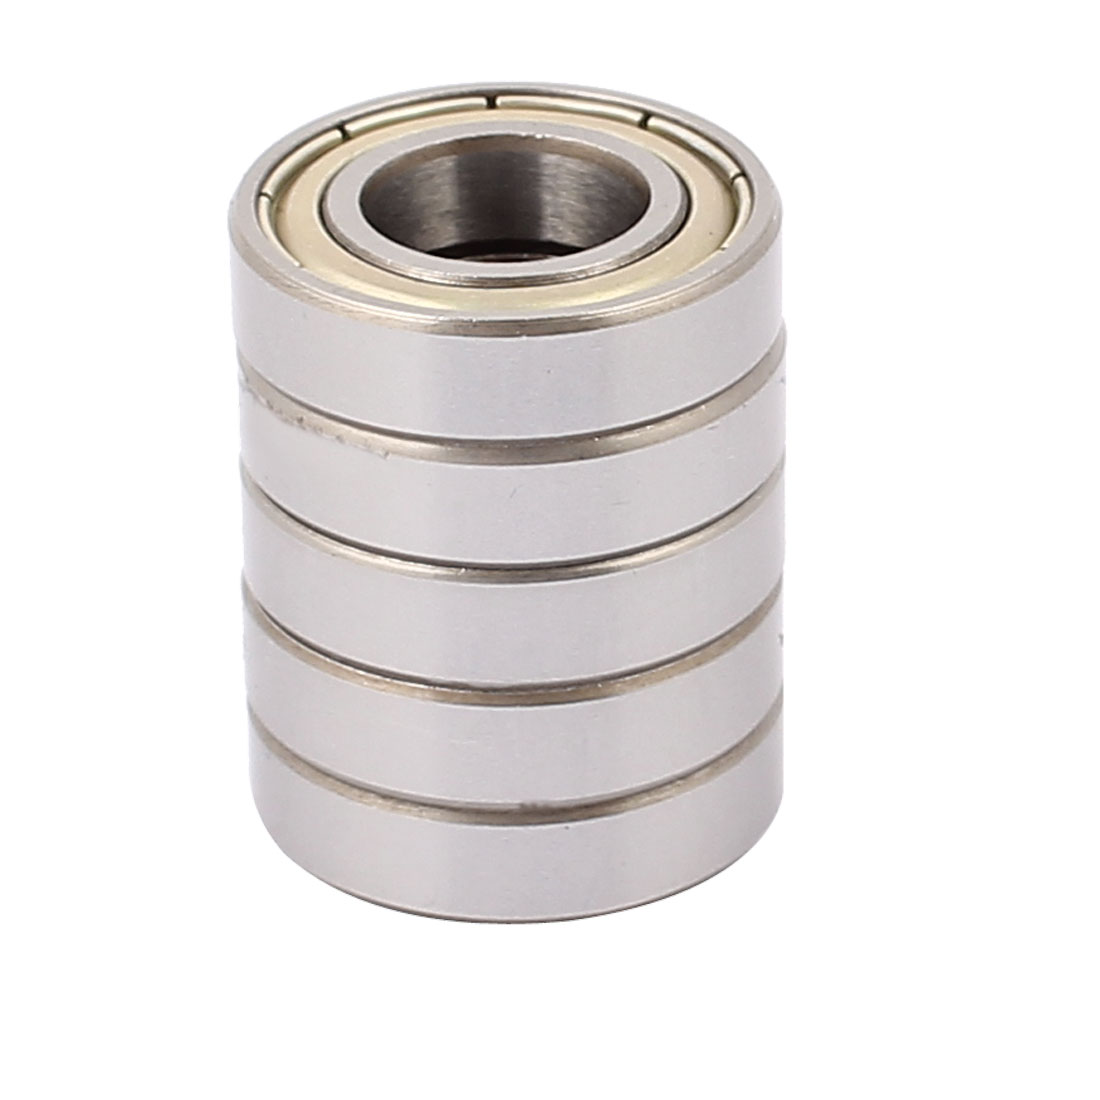 5Pcs 6901Z Deep Groove Sealed Shielded Ball Bearing Silver Tone 12mmx24mmx 6mm